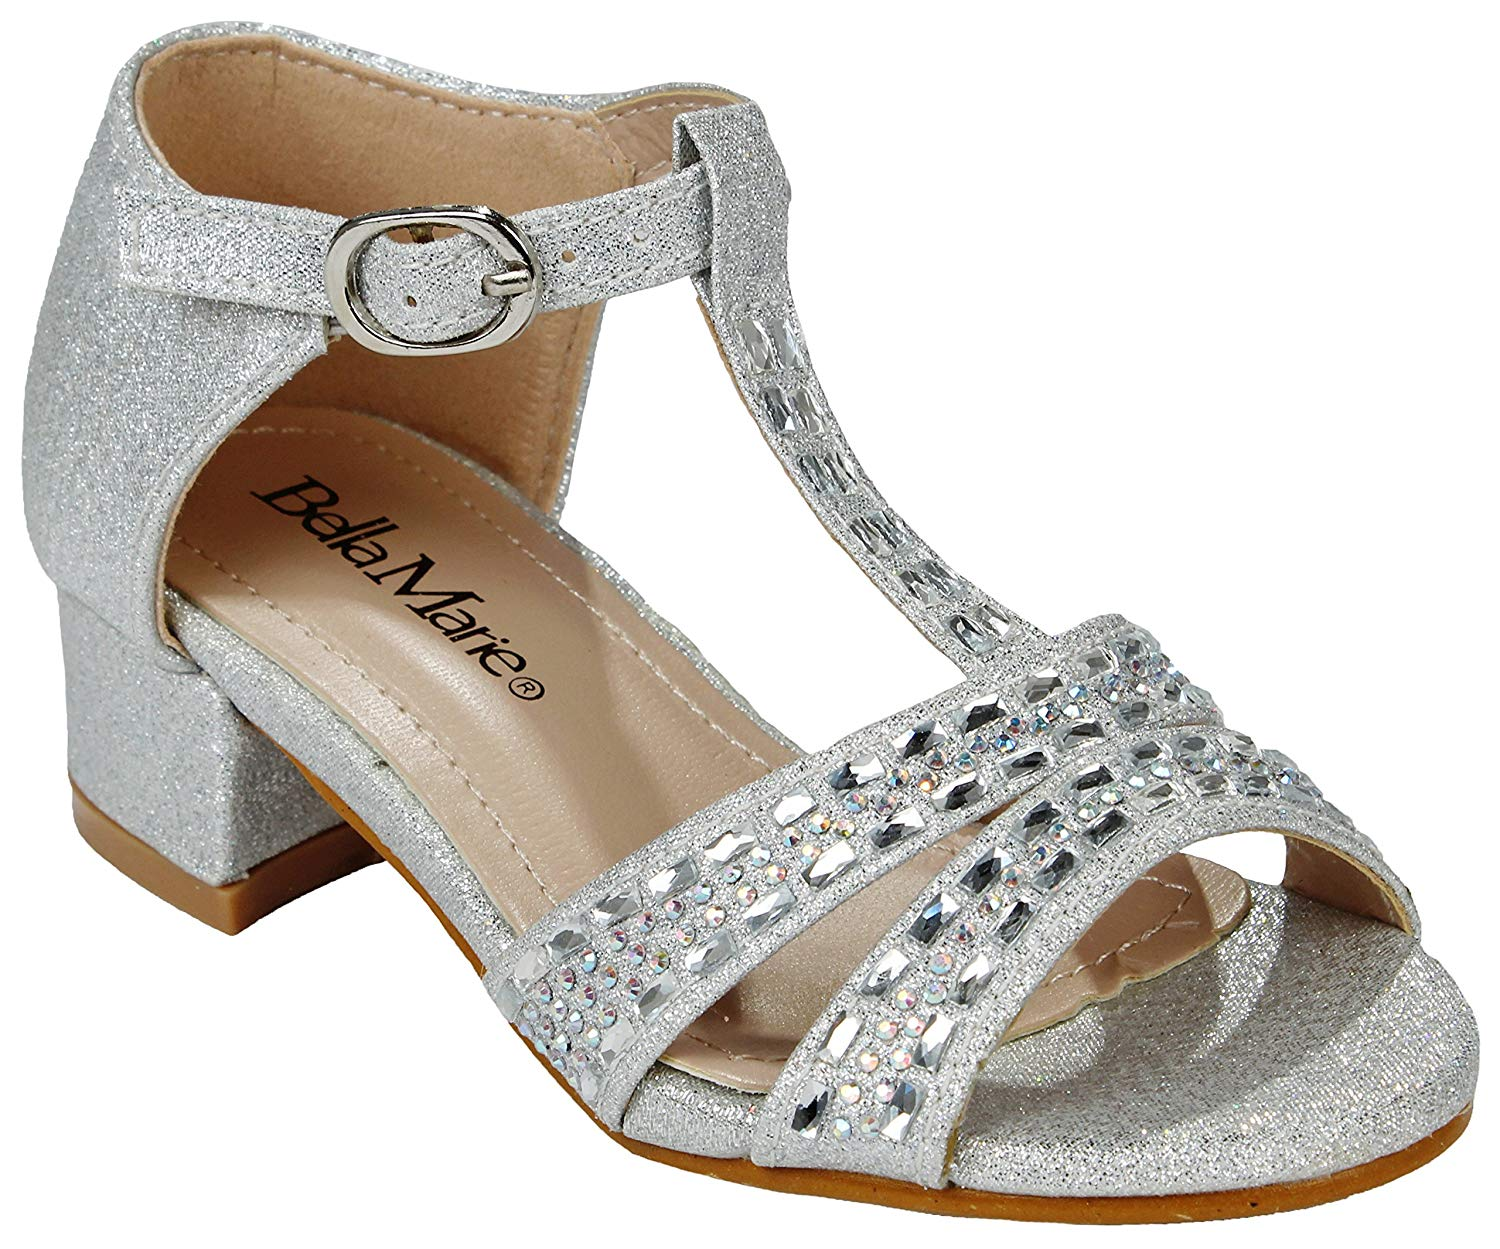 d0e430e21 ... Women Sparkling Crystal Rhinestone Strappy Cut Out Gladiator Flat Dress  Sandals · JJF Shoes Adorababy Ba0050h Kids Girls Sparkling Ankle Strap ...